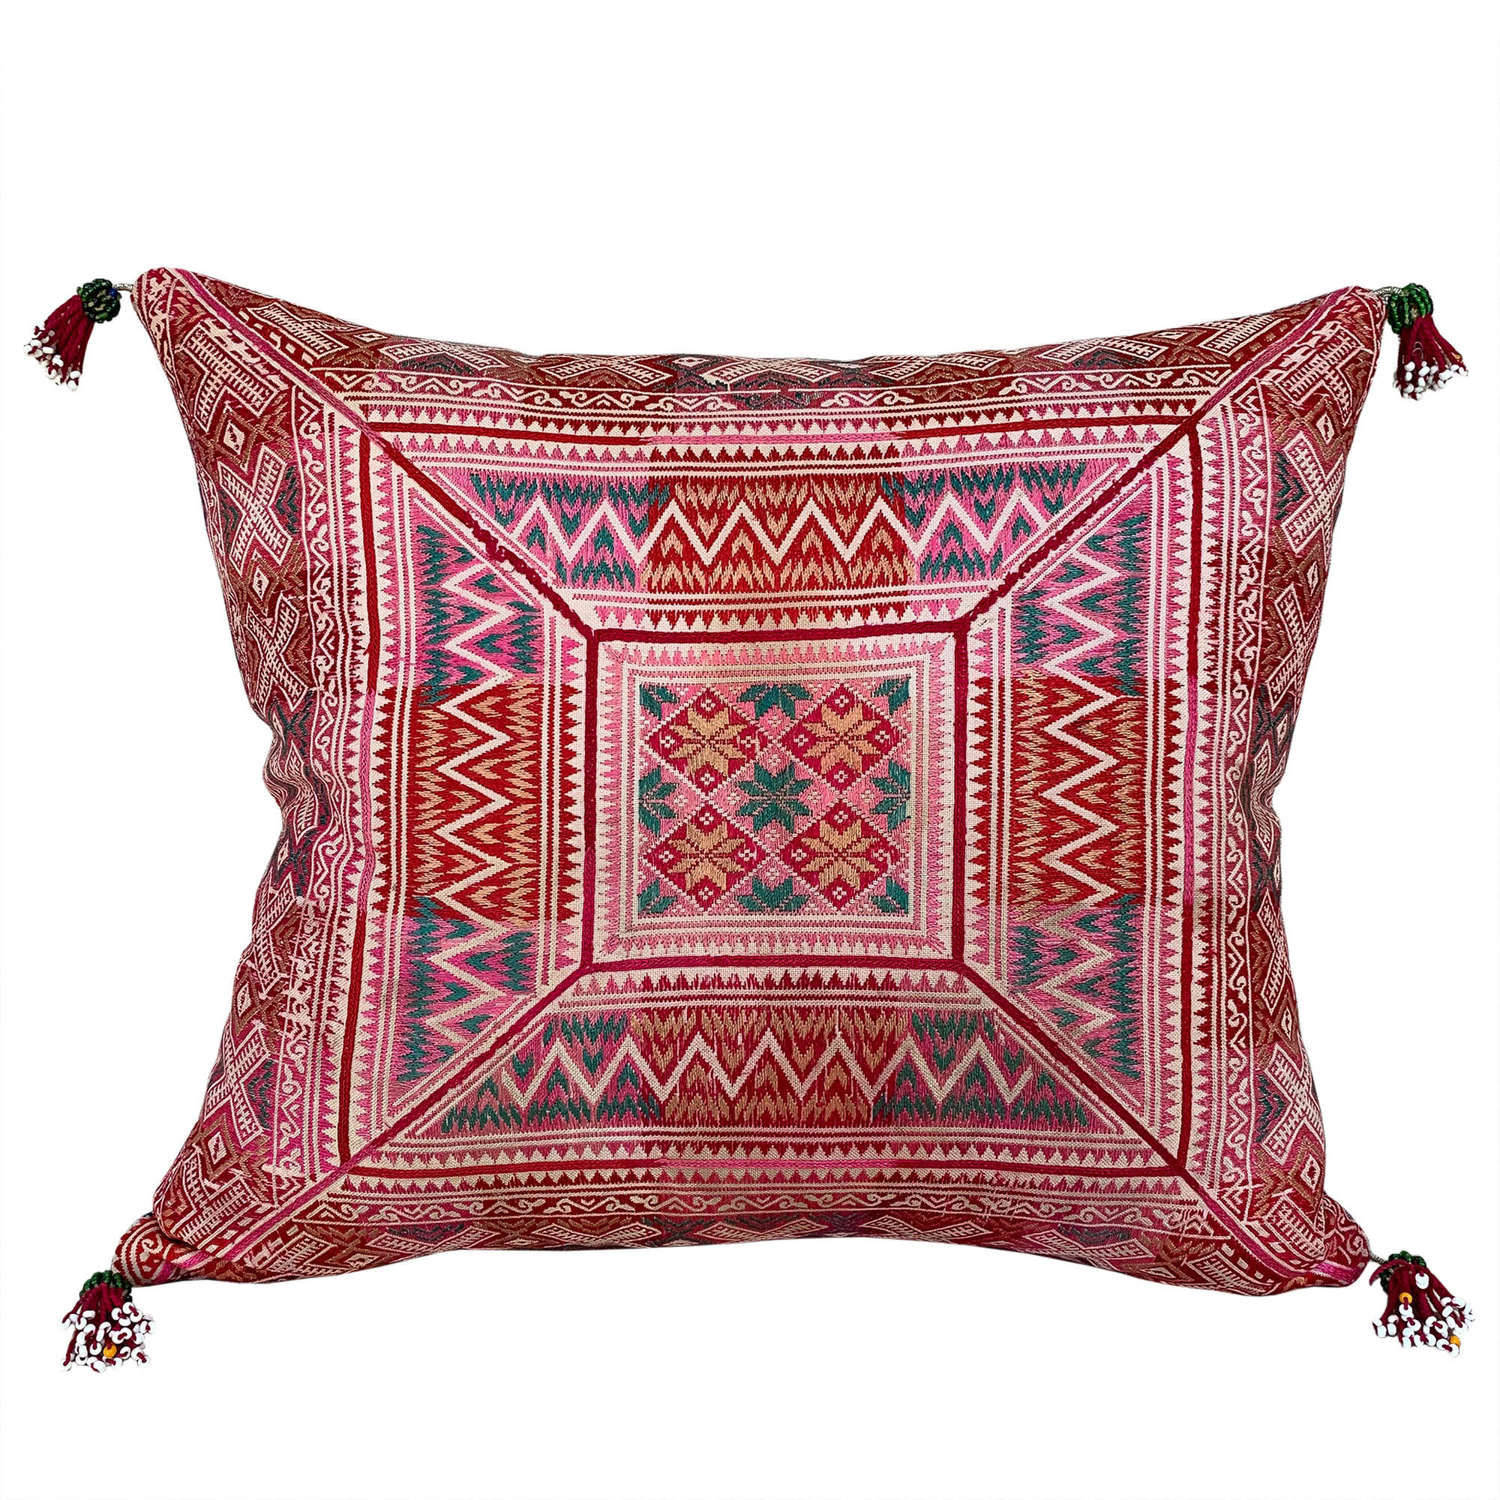 Small cushion with beaded tassels